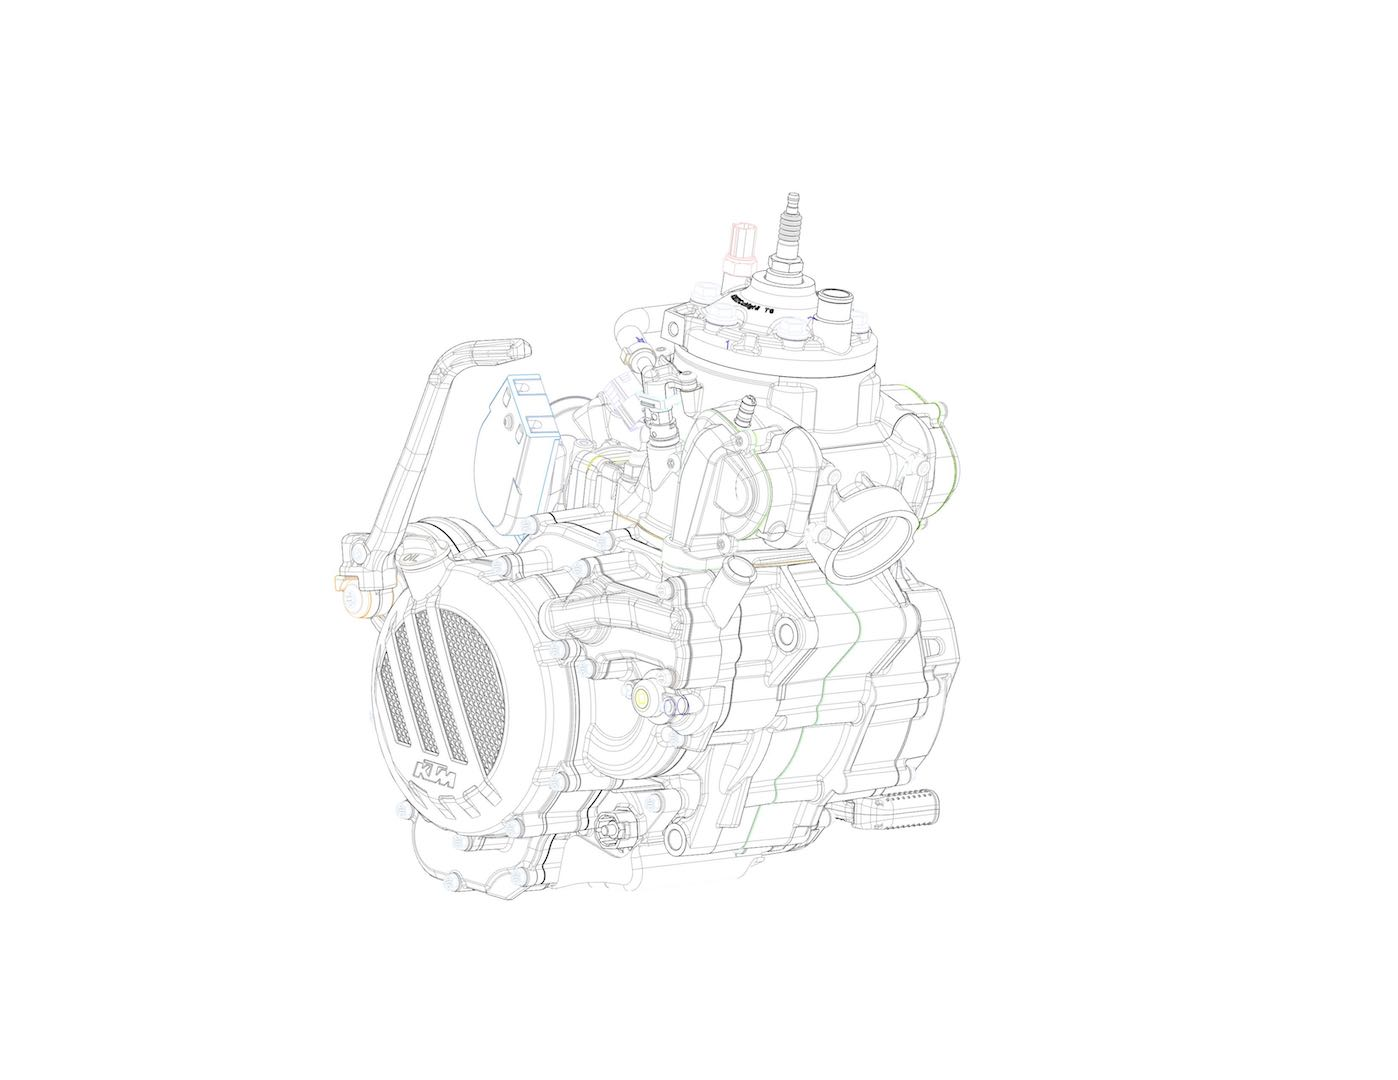 Ktm Fuel Injected Two Stroke Engines Announced